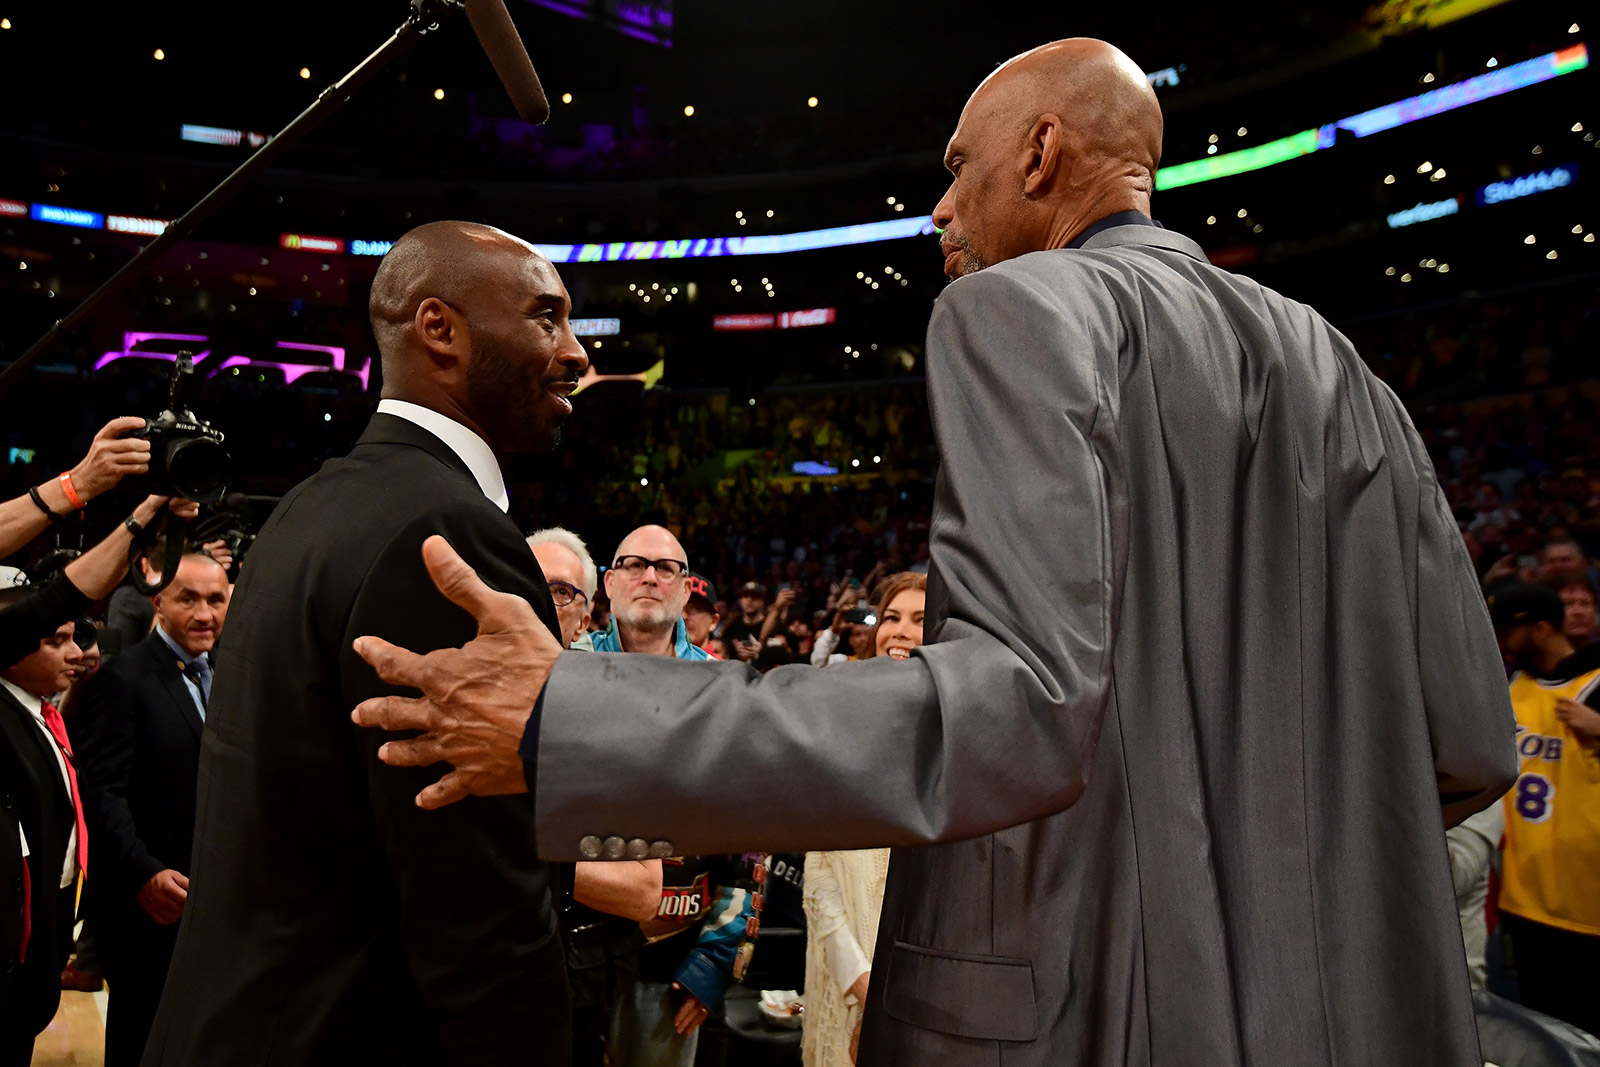 Kobe Bryant, left, greets Kareem Abdul-Jabbar after both of their Los Angeles Lakers jerseys were retired in 2017.